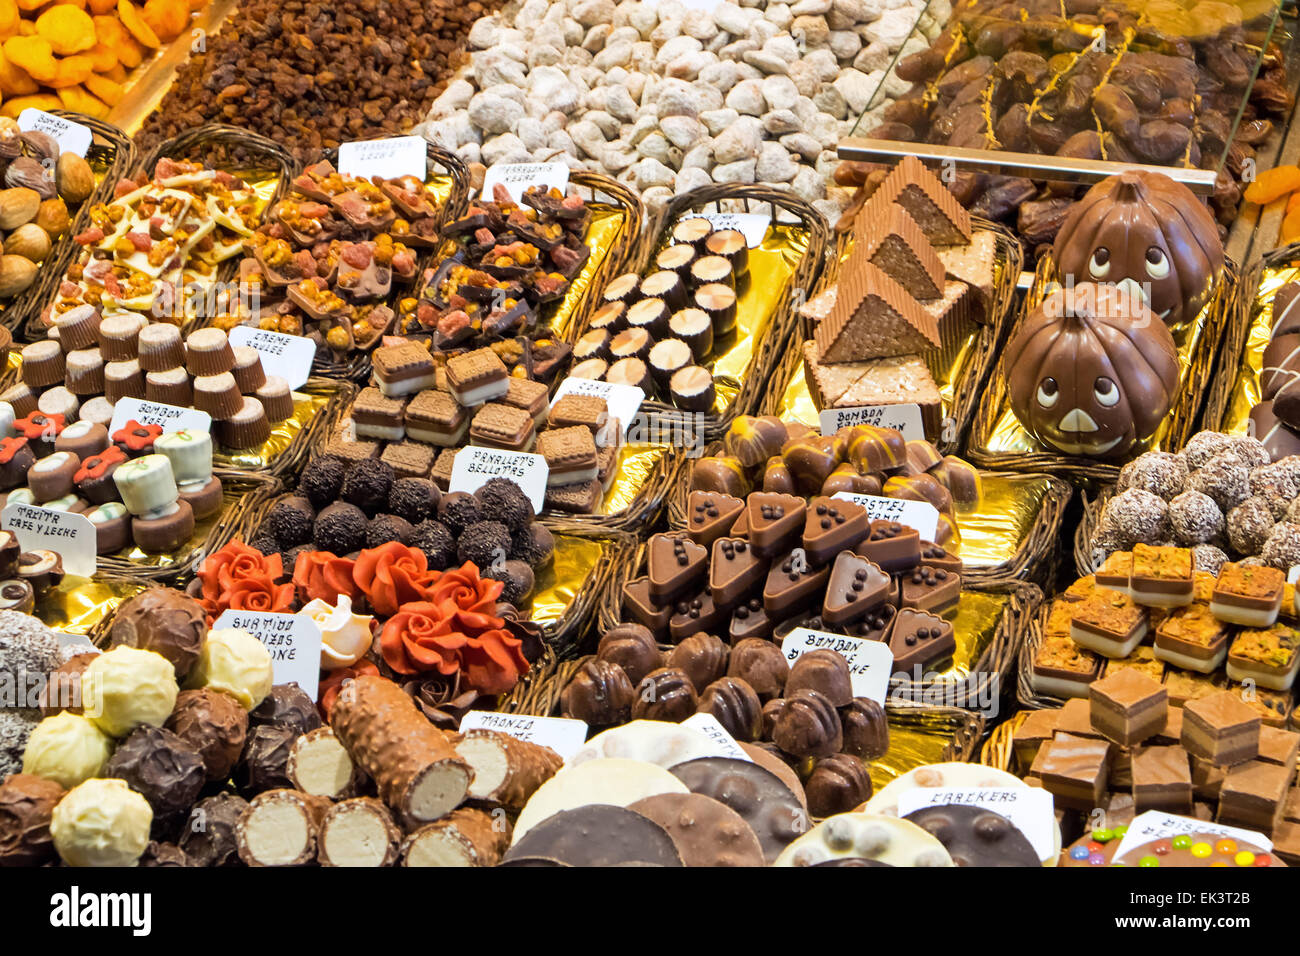 Pralines for sale at the Boqueria market in Barcelona - Stock Image